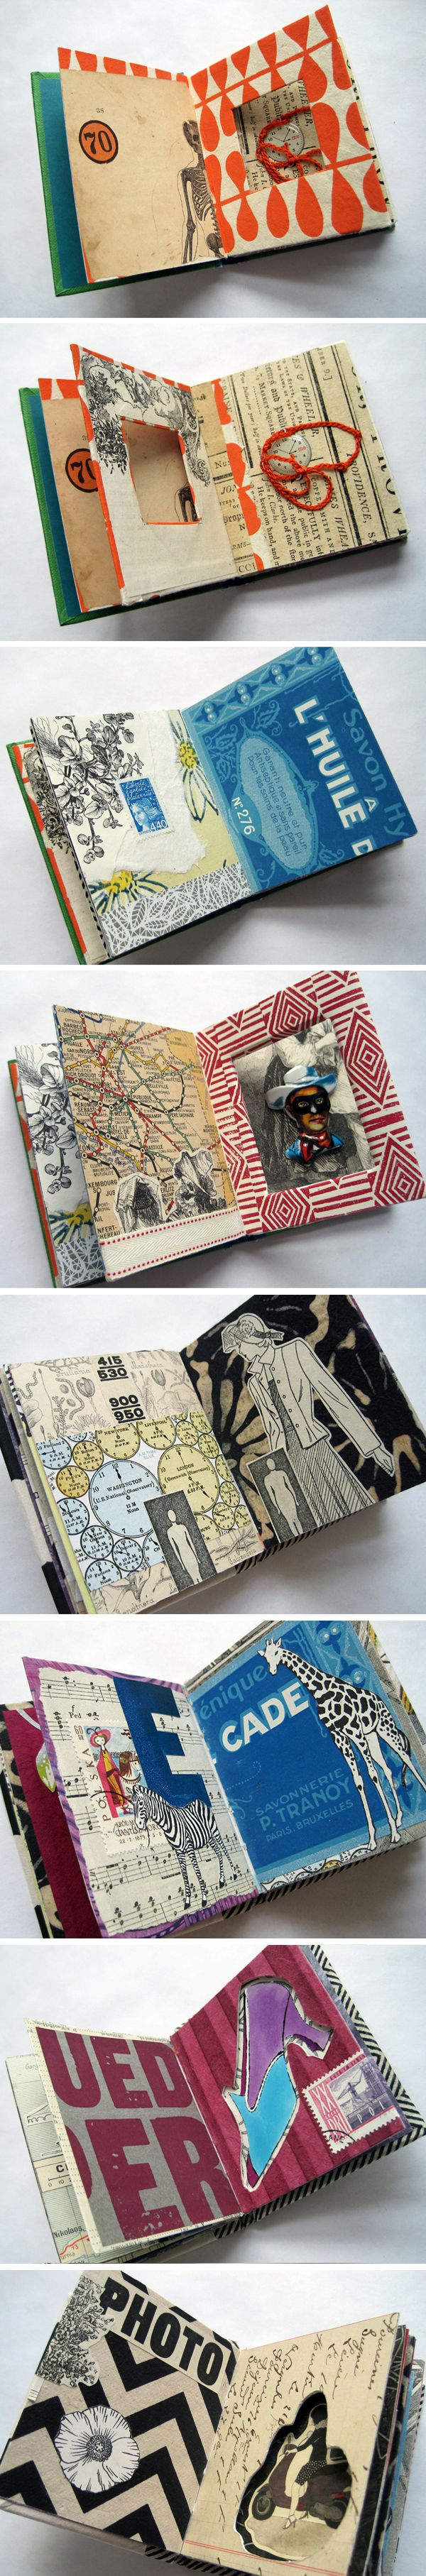 Book Art + Collage project by Trish Leavitt